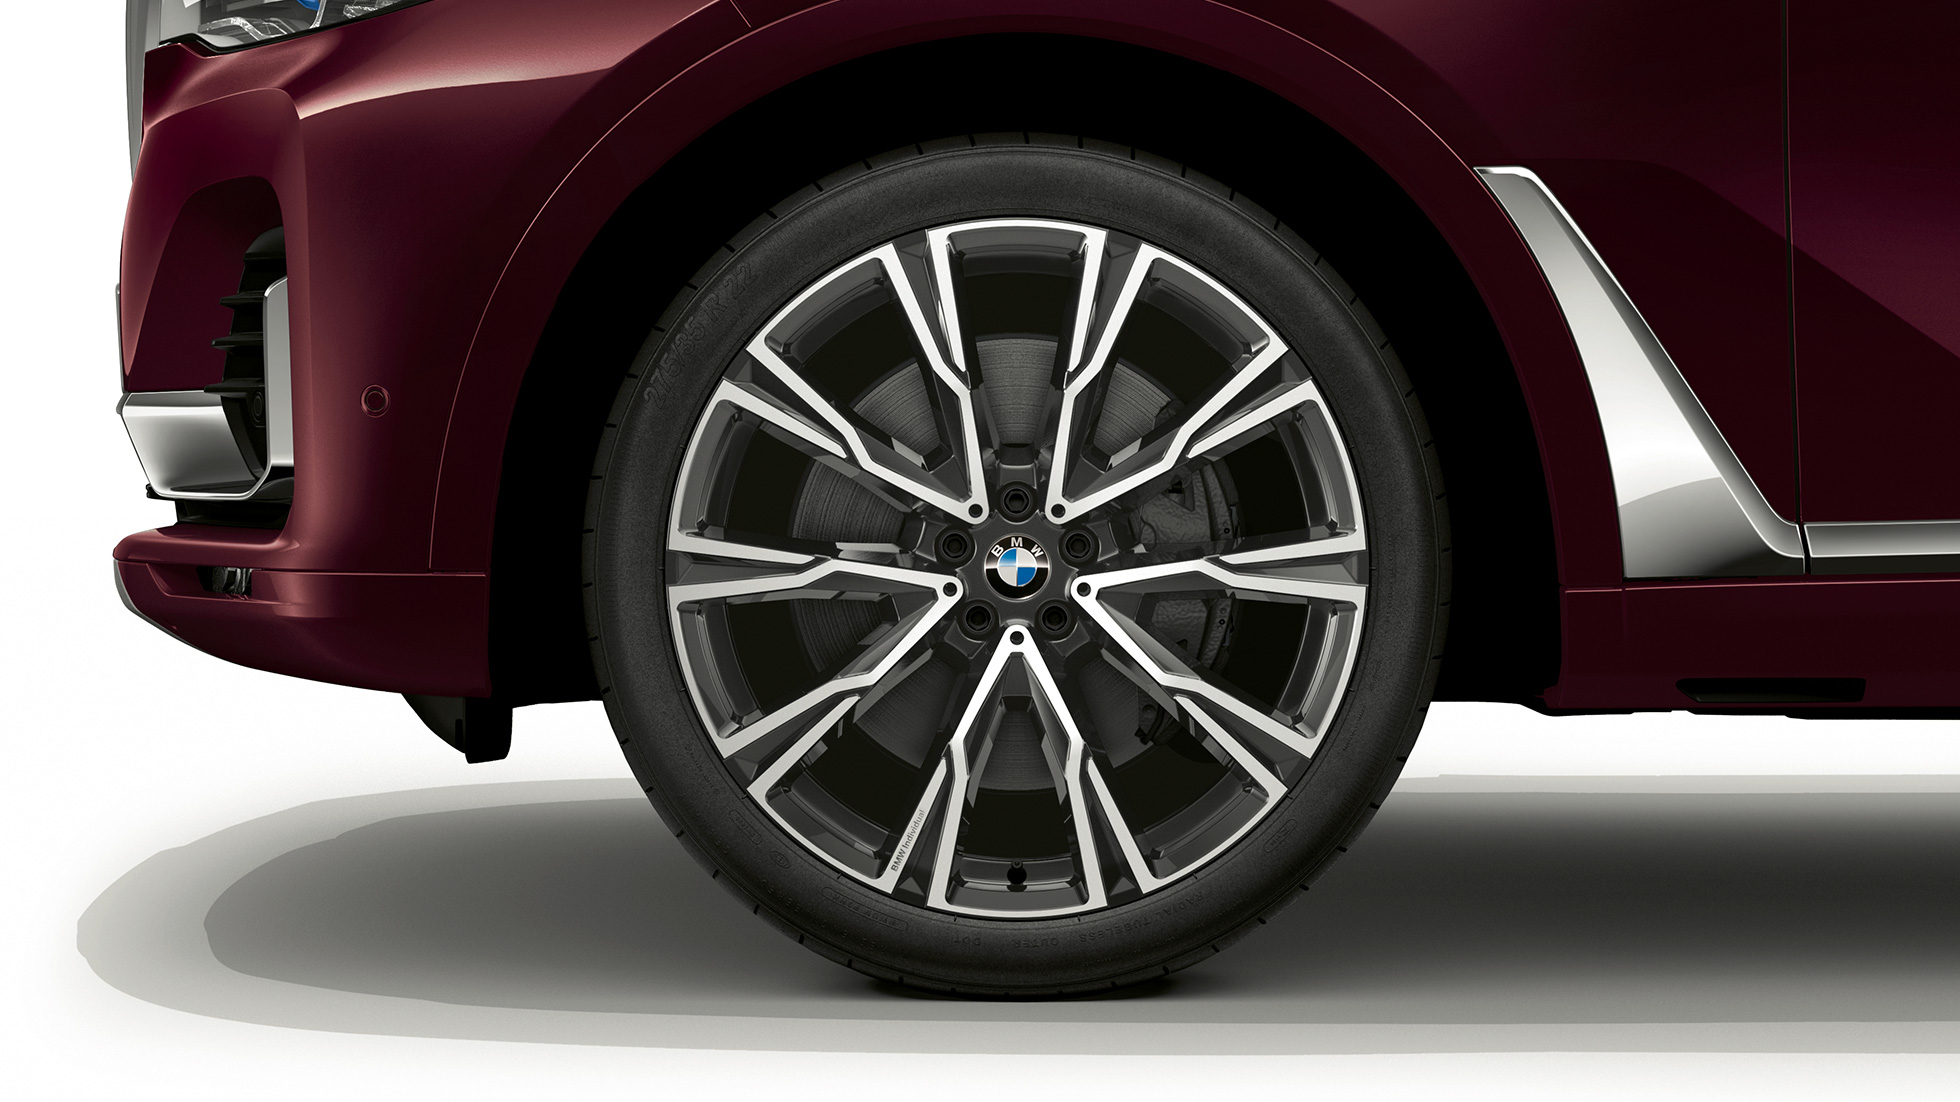 Close-up of the light alloy wheel of the BMW X7 with M Sport Package features